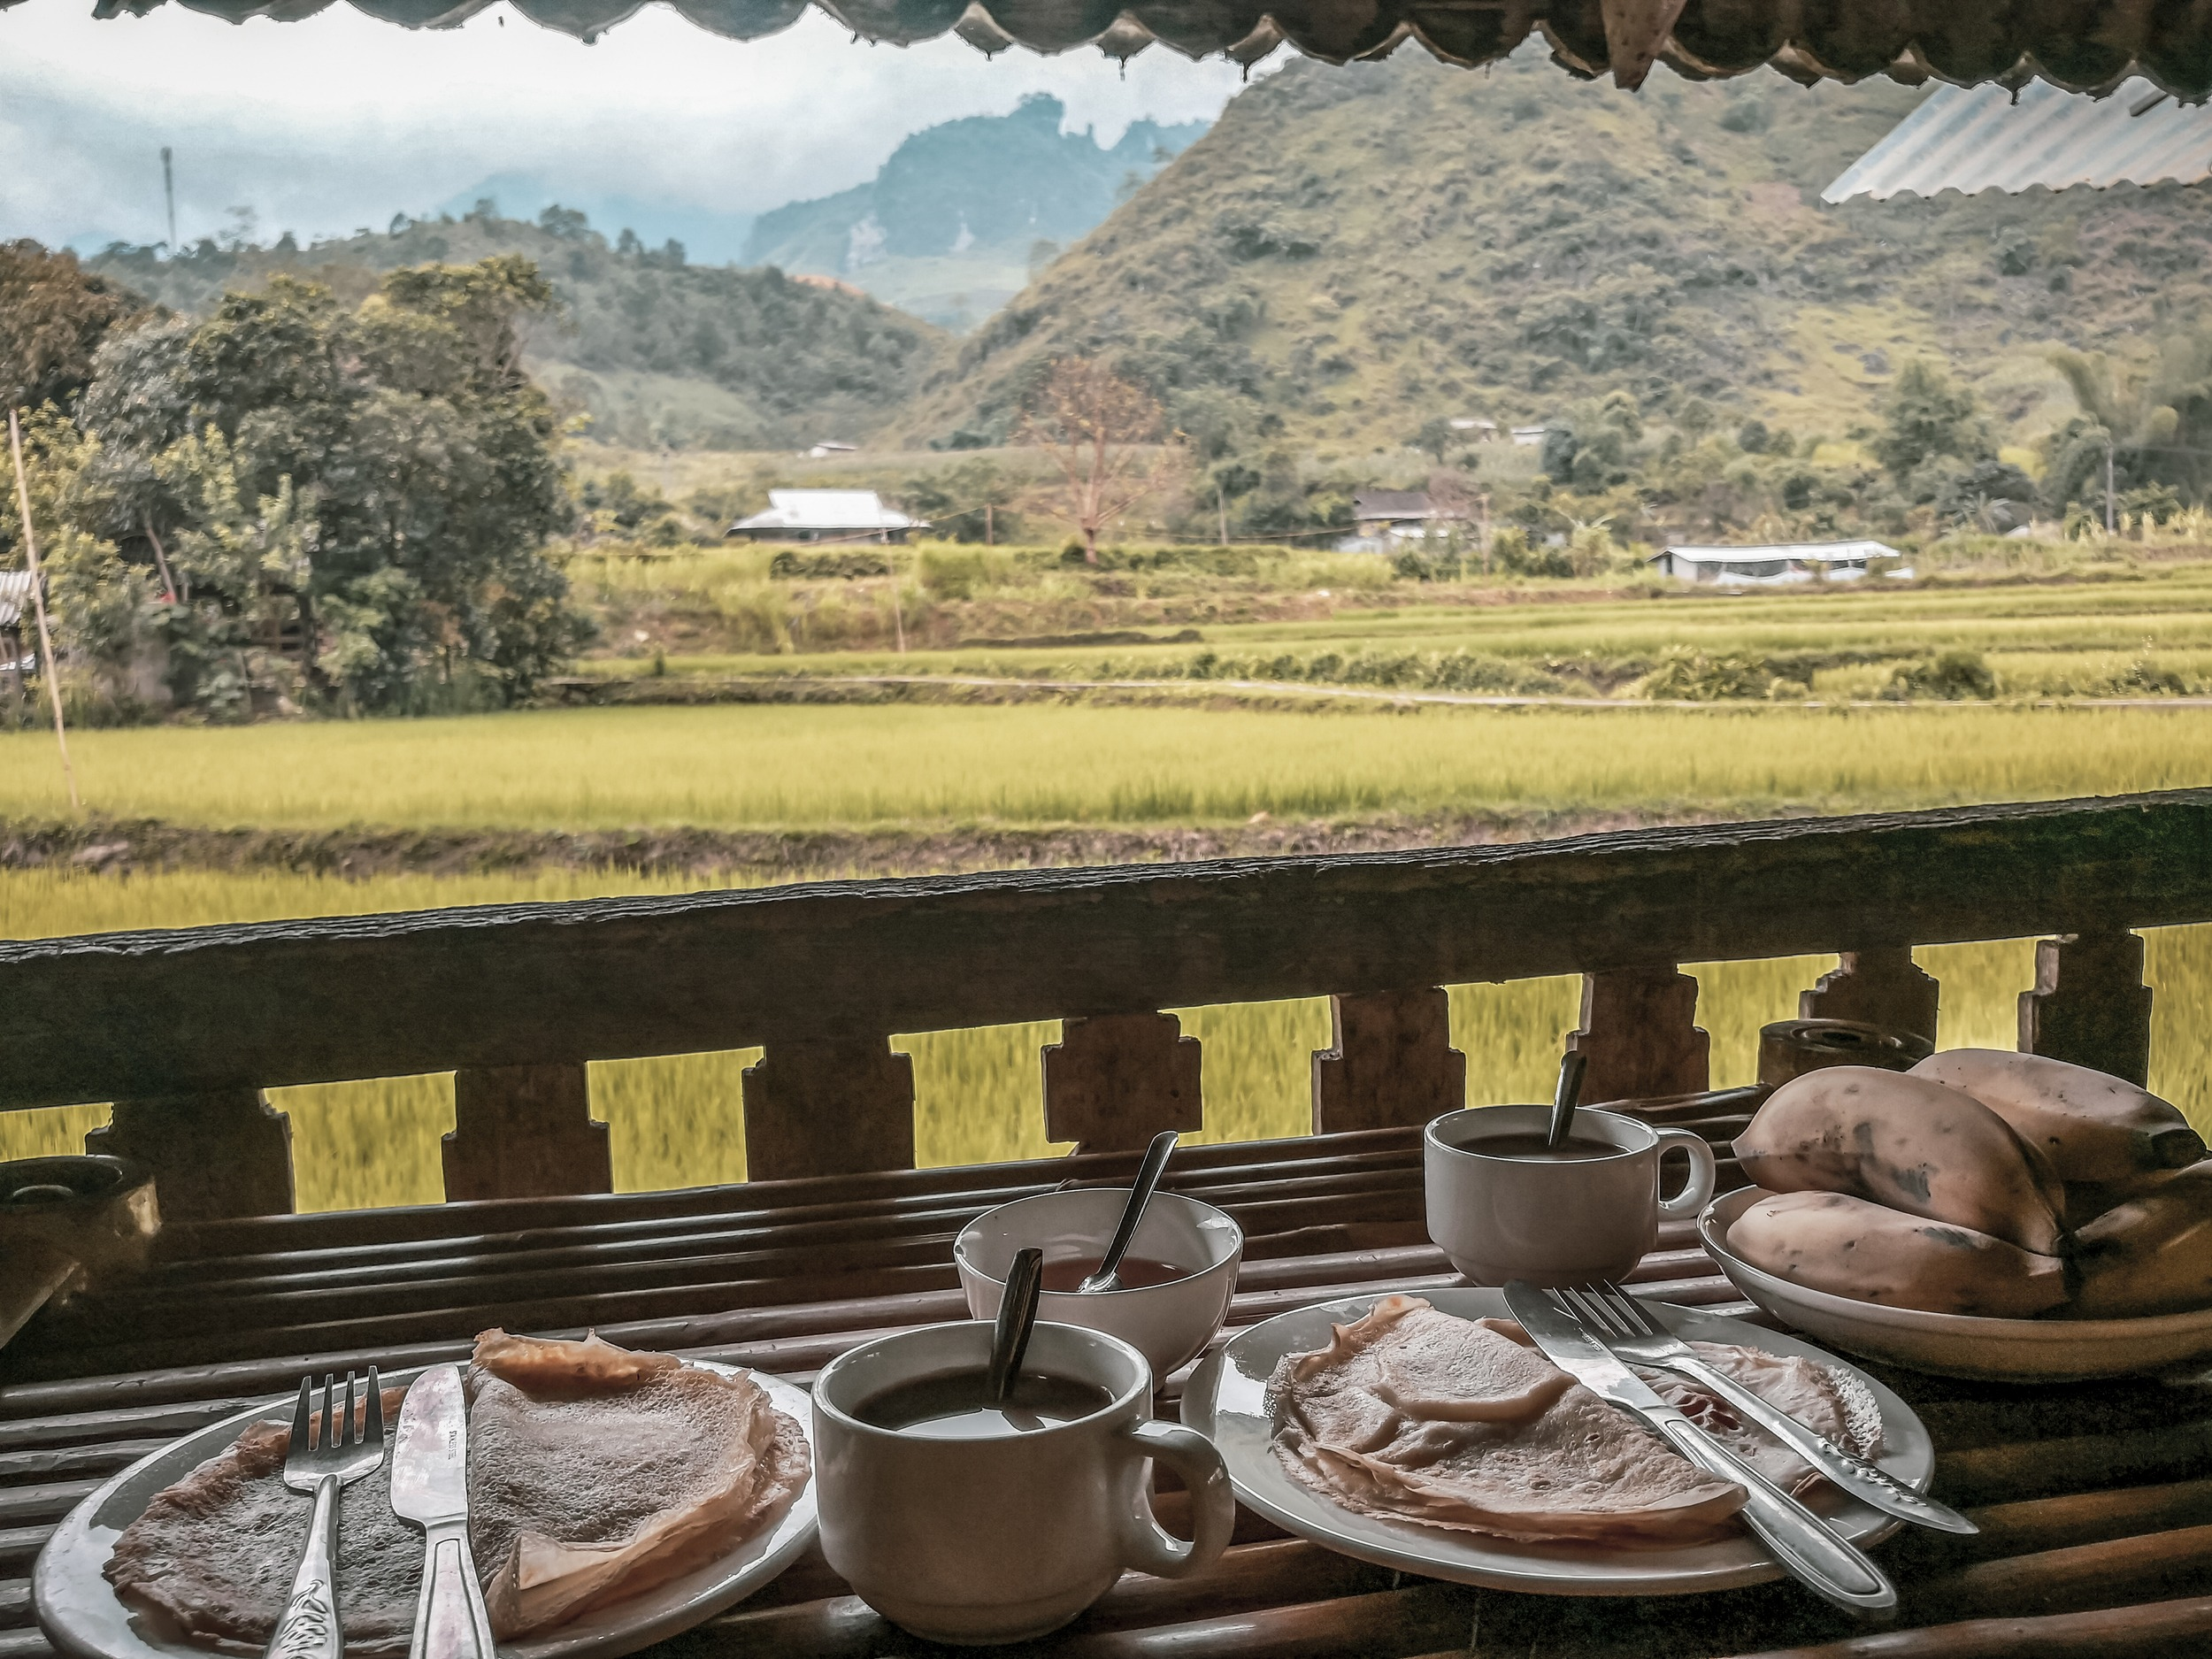 Final breakfast on the Ha-Giang Loop in Vietnam